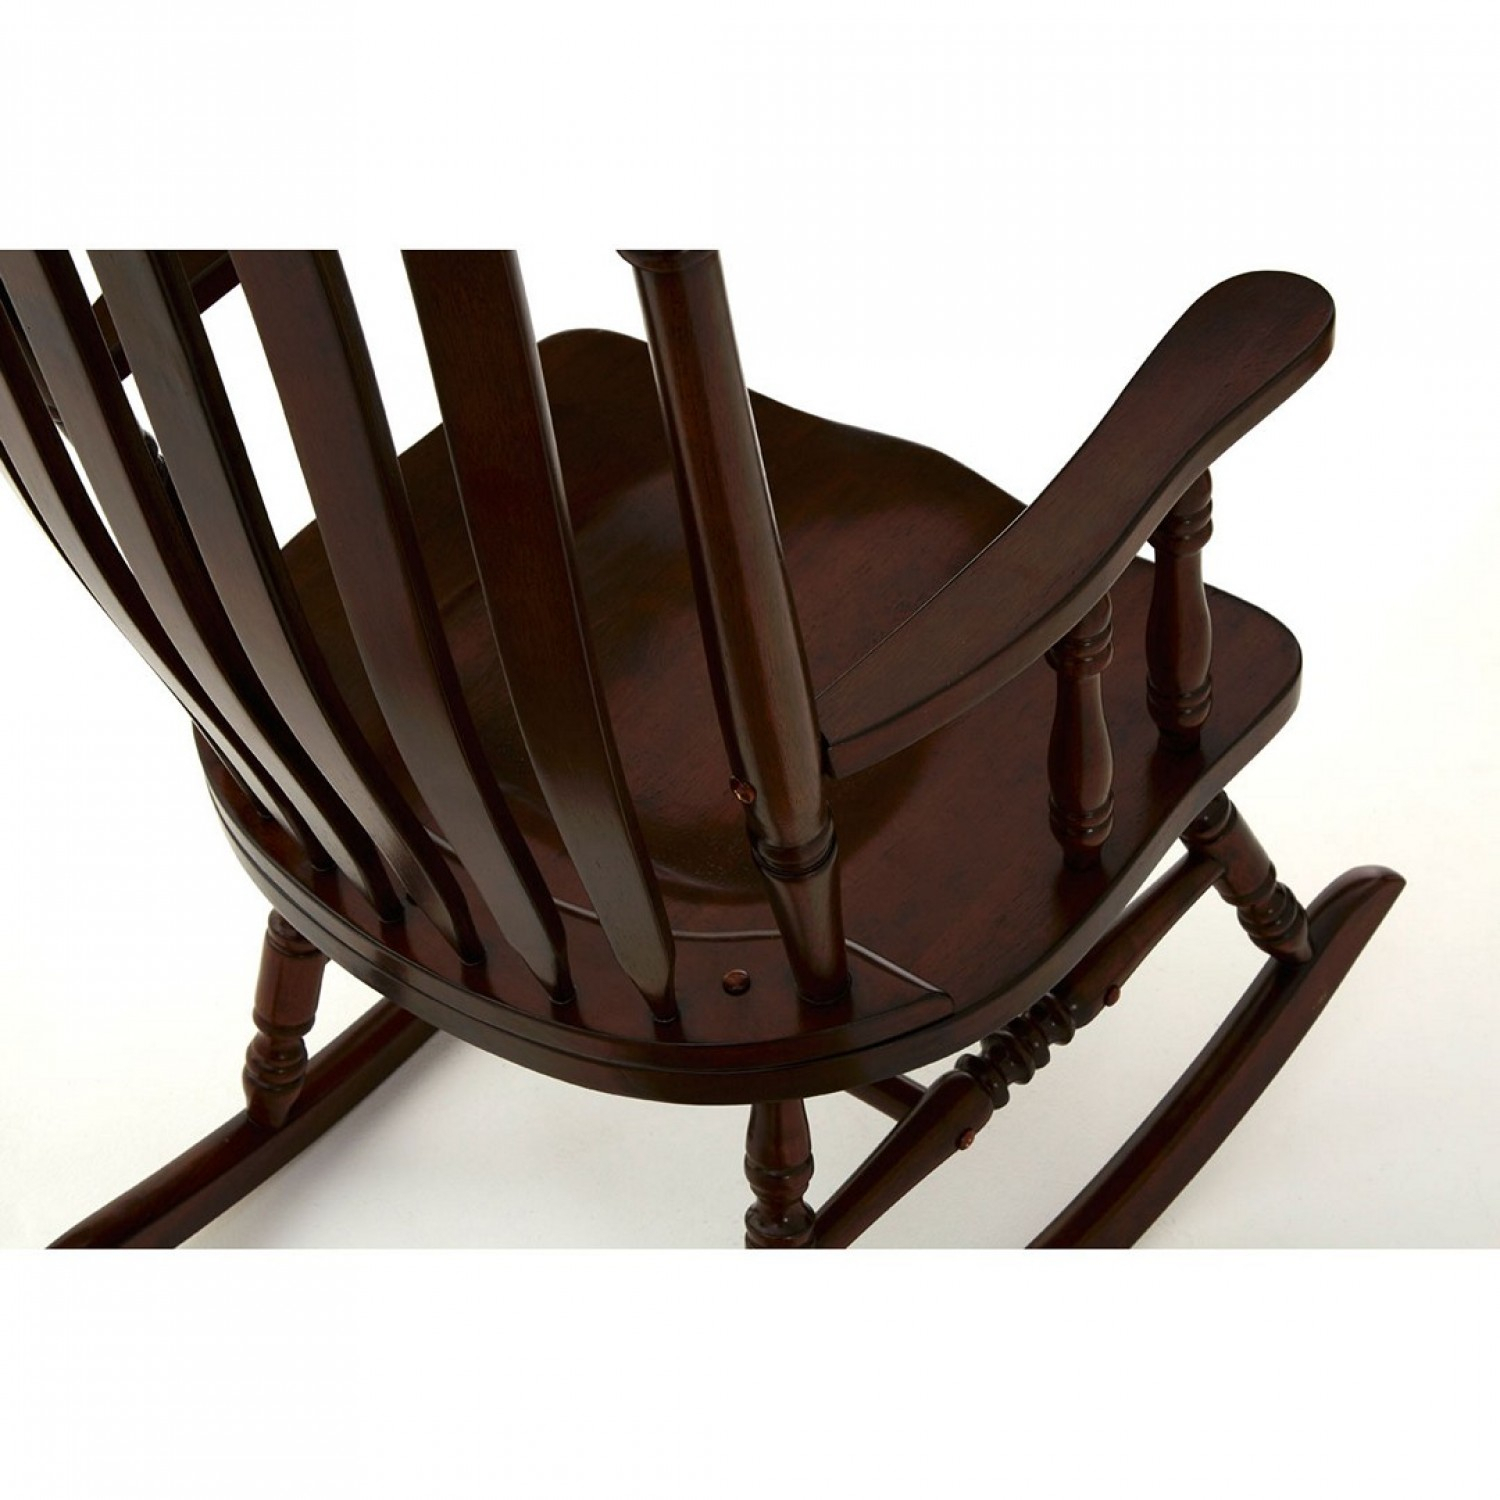 Own This Traditional Rocking Chair, Espresso Colour, Plywood Intended For Brady Traditional White Rocking Chairs (#12 of 20)